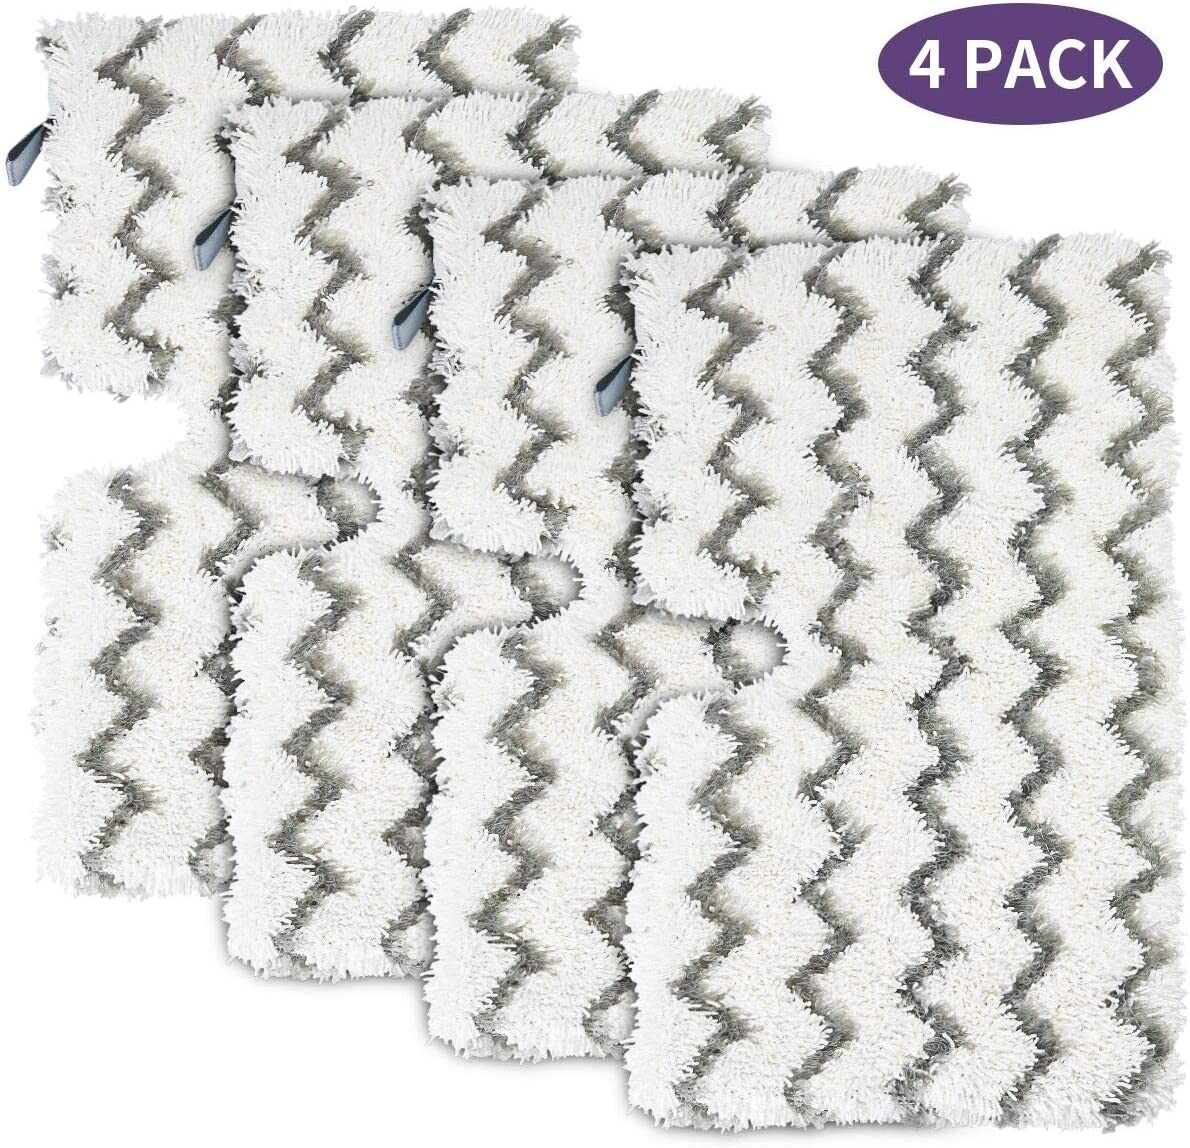 iSingo 4 Pack Shark Replacement Steam Mop Pads for Shark Steam Pocket Mop Hard Floor Cleaner S3501 S3550 S3601 S3601D S3801 S3801CO S3901 SE450 S2901 S2902, with Scrub Strips, Washable